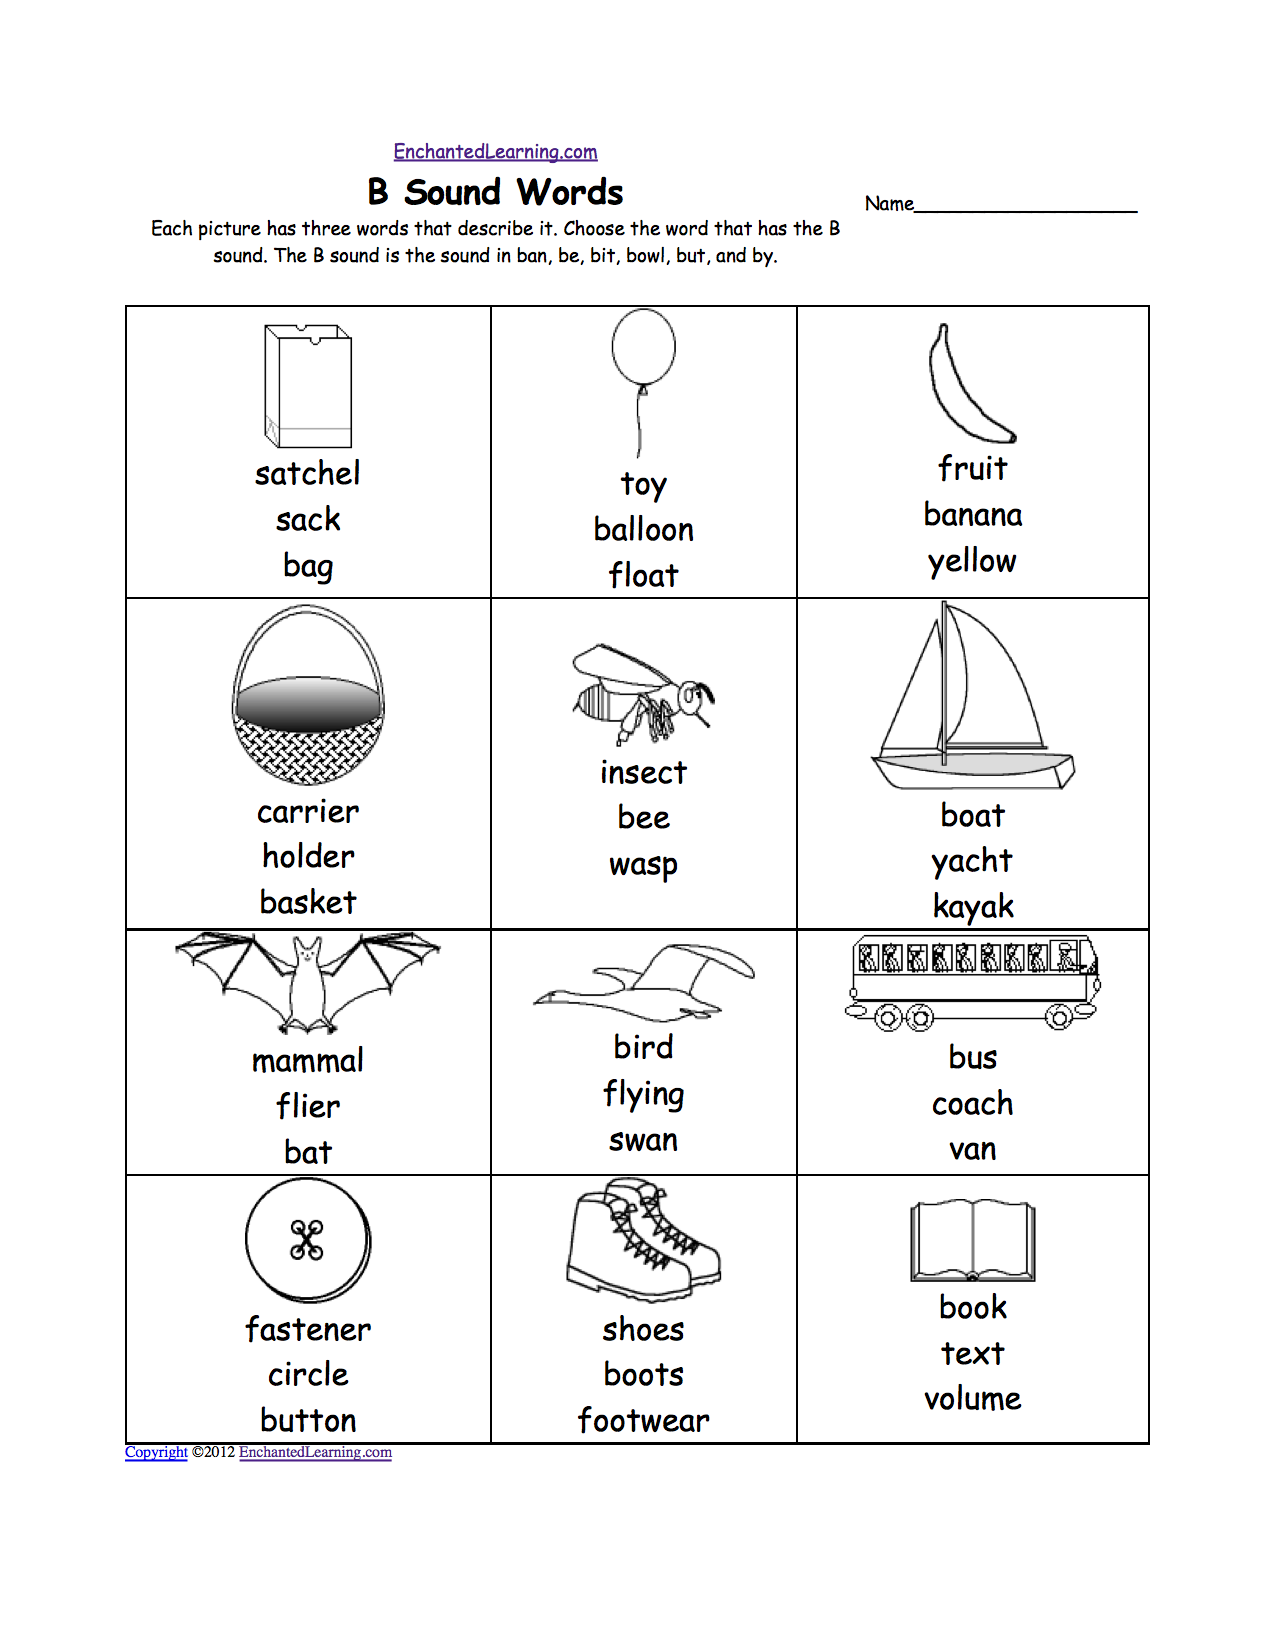 Proatmealus  Remarkable Phonics Worksheets Multiple Choice Worksheets To Print  With Gorgeous Quotbquot Sound Phonics Worksheet Multiple Choice Each Picture Has Three Words That Describe It Choose The Word That Has A Quotbquot Sound The Quotbquot Sound Is The Sound  With Attractive Irregular Past Tense Verb Worksheets Also Quadratic Equation Problems Worksheet In Addition Pronoun Verb Agreement Worksheets And Practice Cursive Worksheets As Well As Math Worksheets For Kindergarten Free Additionally Balancing Simple Chemical Equations Worksheet From Enchantedlearningcom With Proatmealus  Gorgeous Phonics Worksheets Multiple Choice Worksheets To Print  With Attractive Quotbquot Sound Phonics Worksheet Multiple Choice Each Picture Has Three Words That Describe It Choose The Word That Has A Quotbquot Sound The Quotbquot Sound Is The Sound  And Remarkable Irregular Past Tense Verb Worksheets Also Quadratic Equation Problems Worksheet In Addition Pronoun Verb Agreement Worksheets From Enchantedlearningcom